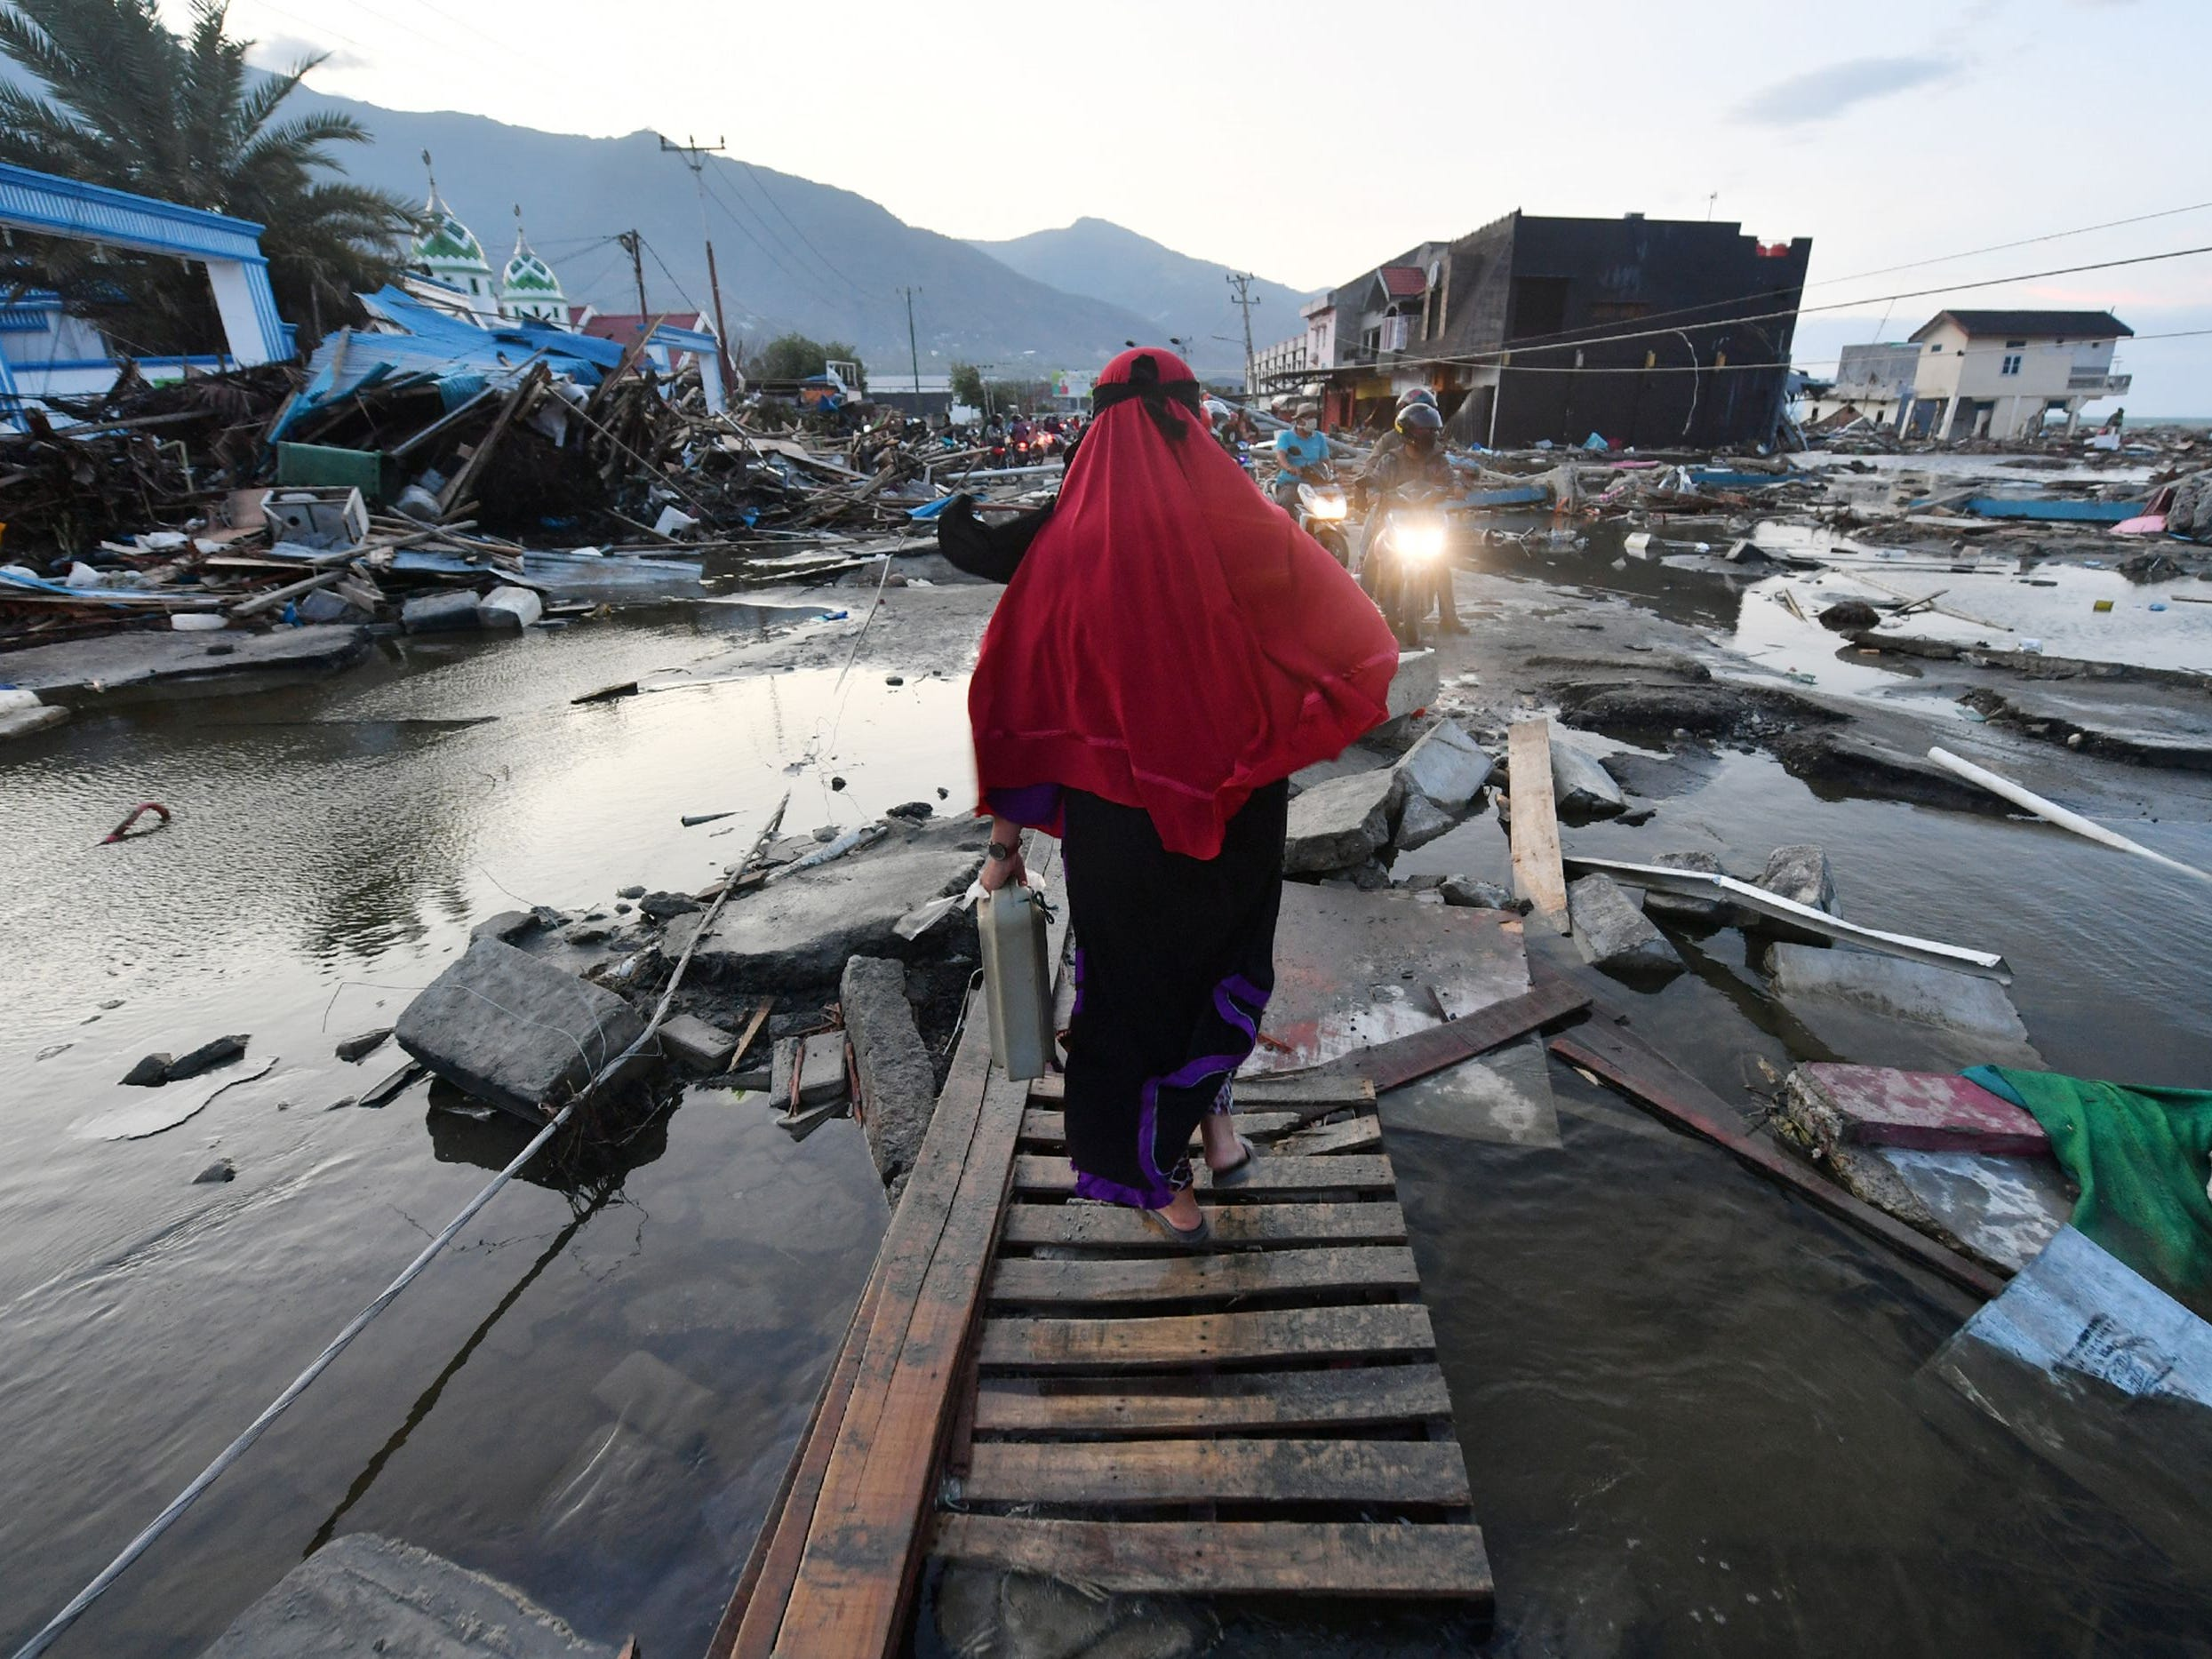 TOPSHOT - A woman walks through a devastated area in Palu, Indonesia's Central Sulawesi on October 1, 2018, after an earthquake and tsunami hit the area on September 28. - Indonesian volunteers began burying bodies in a mass grave with space for more than a thousand people on October 1, victims of a quake-tsunami that devastated swathes of Sulawesi and left authorities struggling to deal with the sheer scale of the disaster.